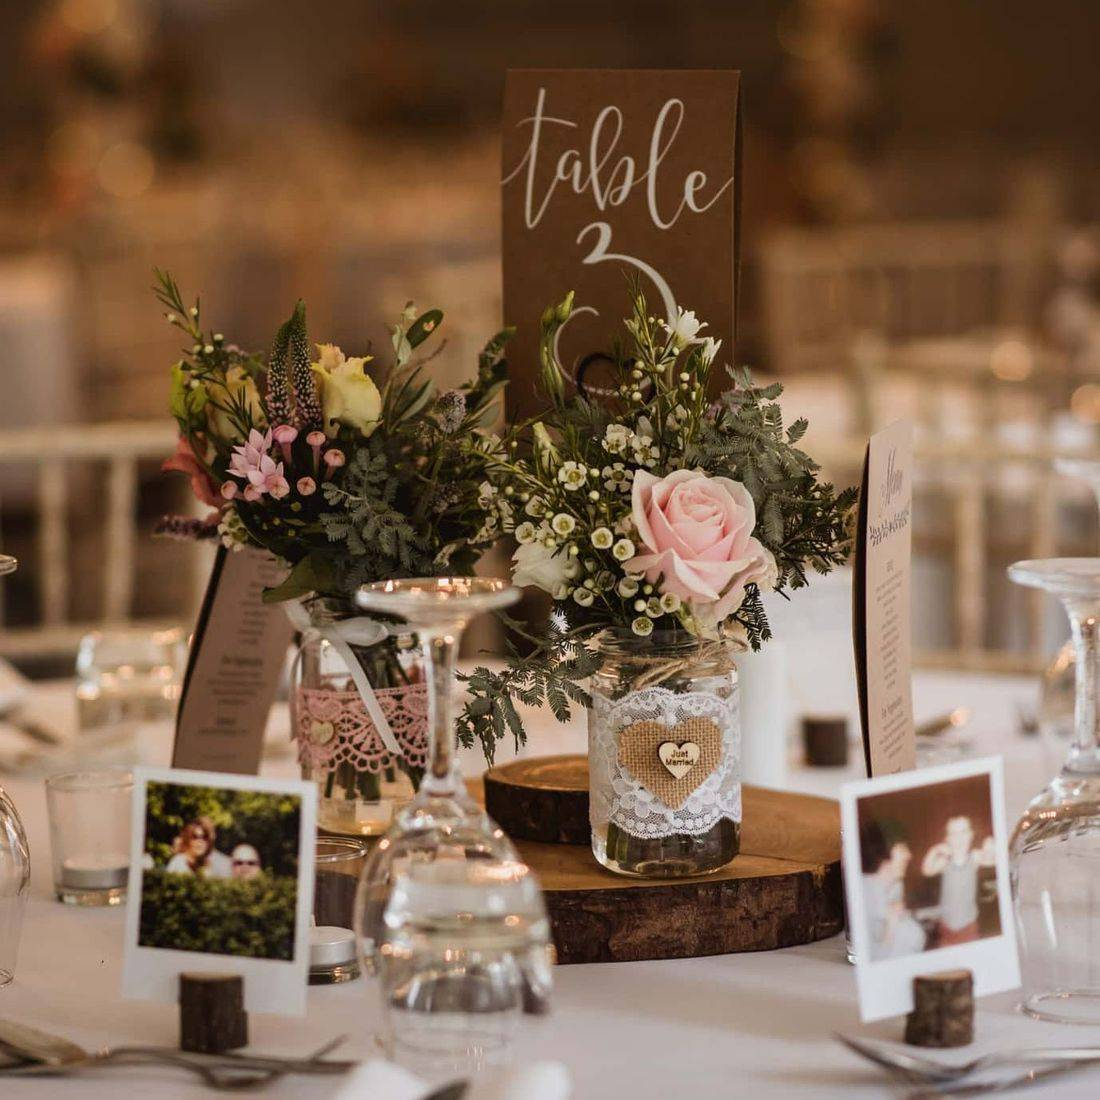 Rustic wedding centrepiece at The Old Vicarage Venue captured by Robin Goodlad Photography with flowers by Concept Flowers